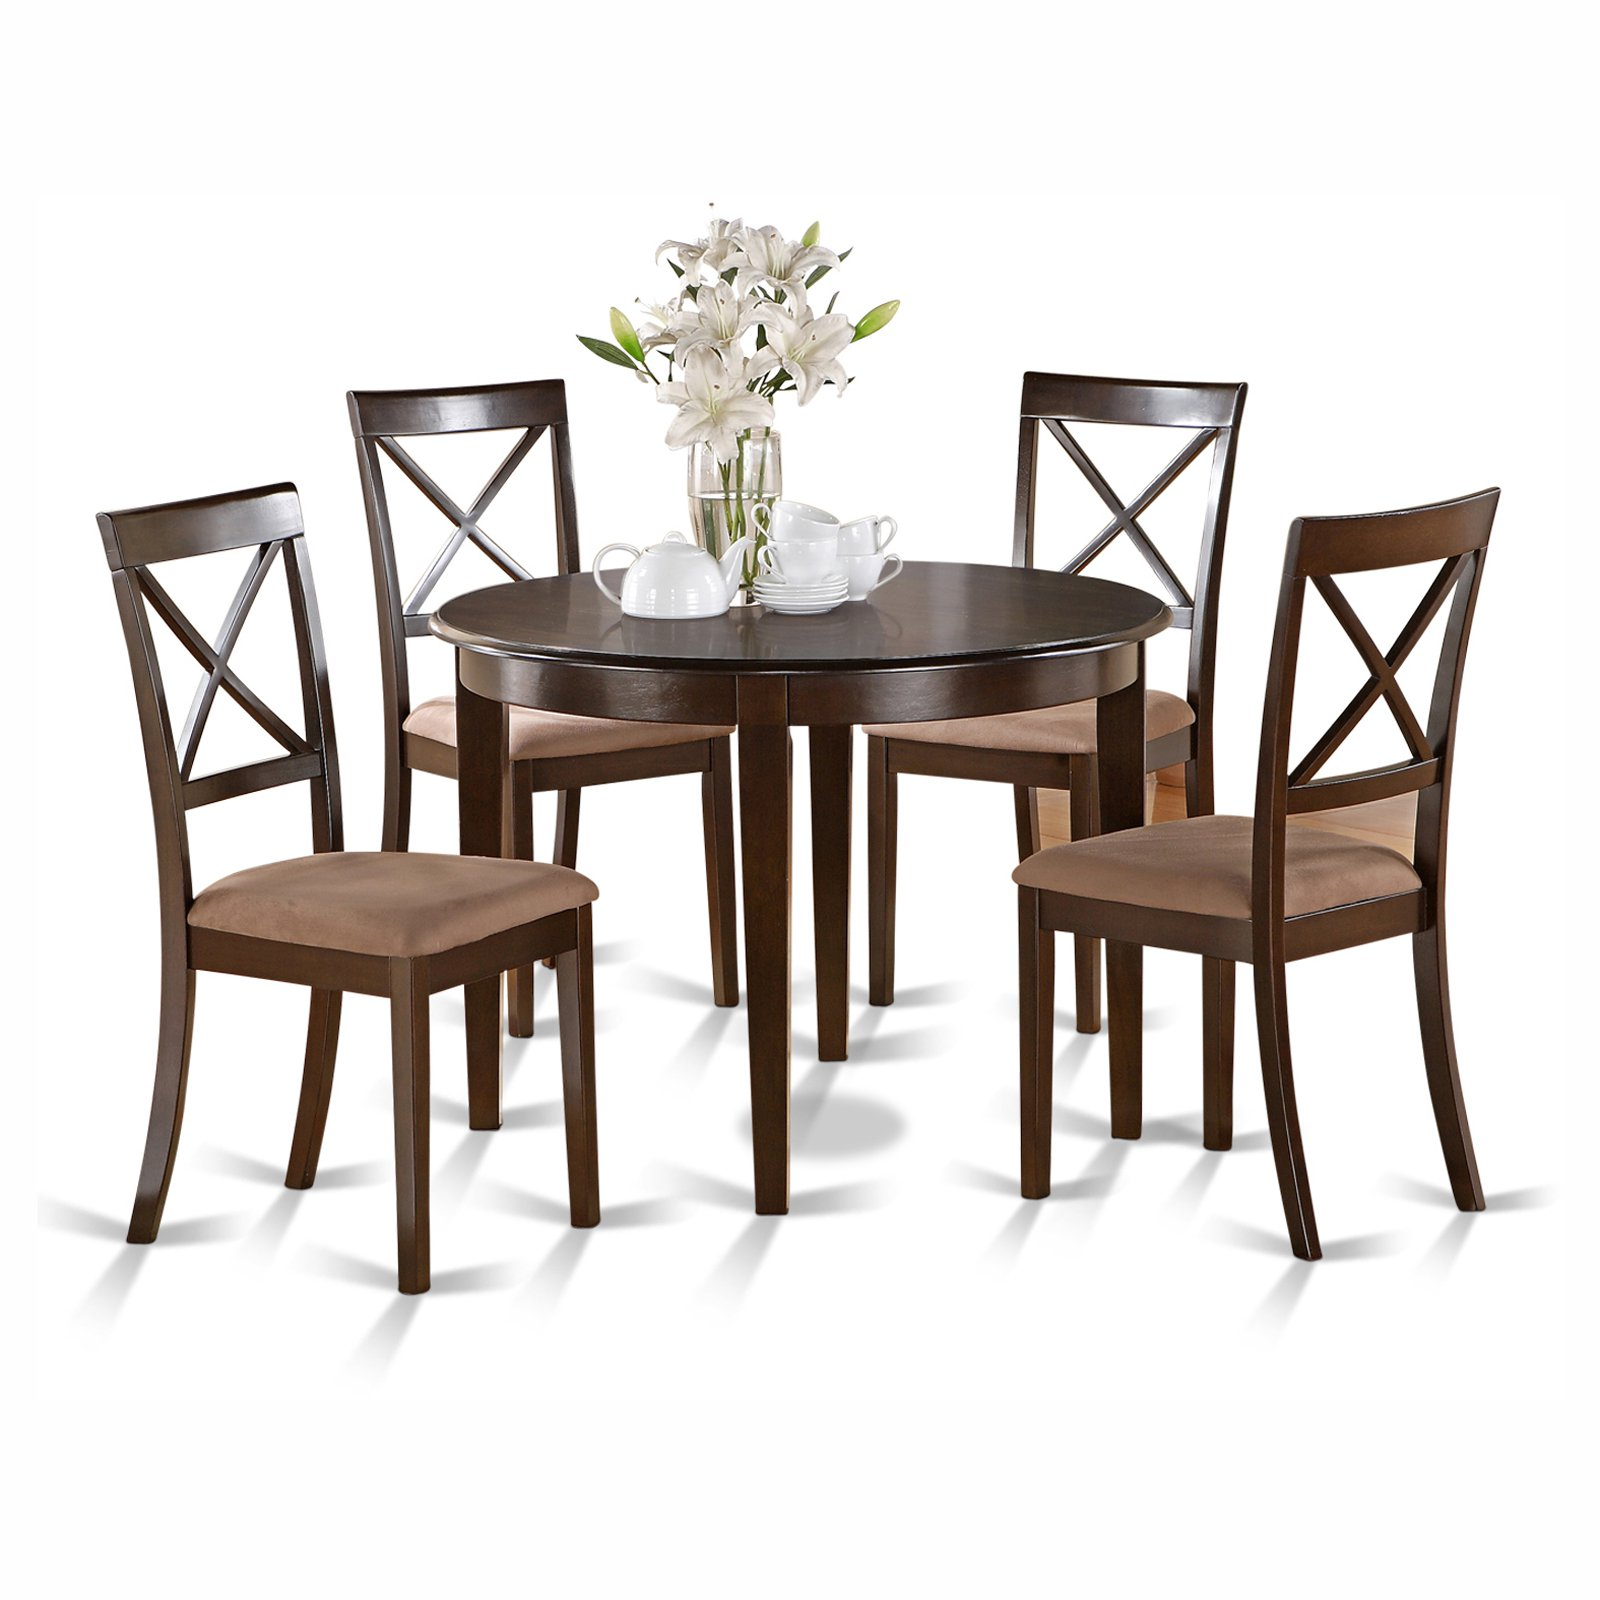 East West Furniture Boston 5 Piece Round Dining Table Set with Microfiber Seat Chairs